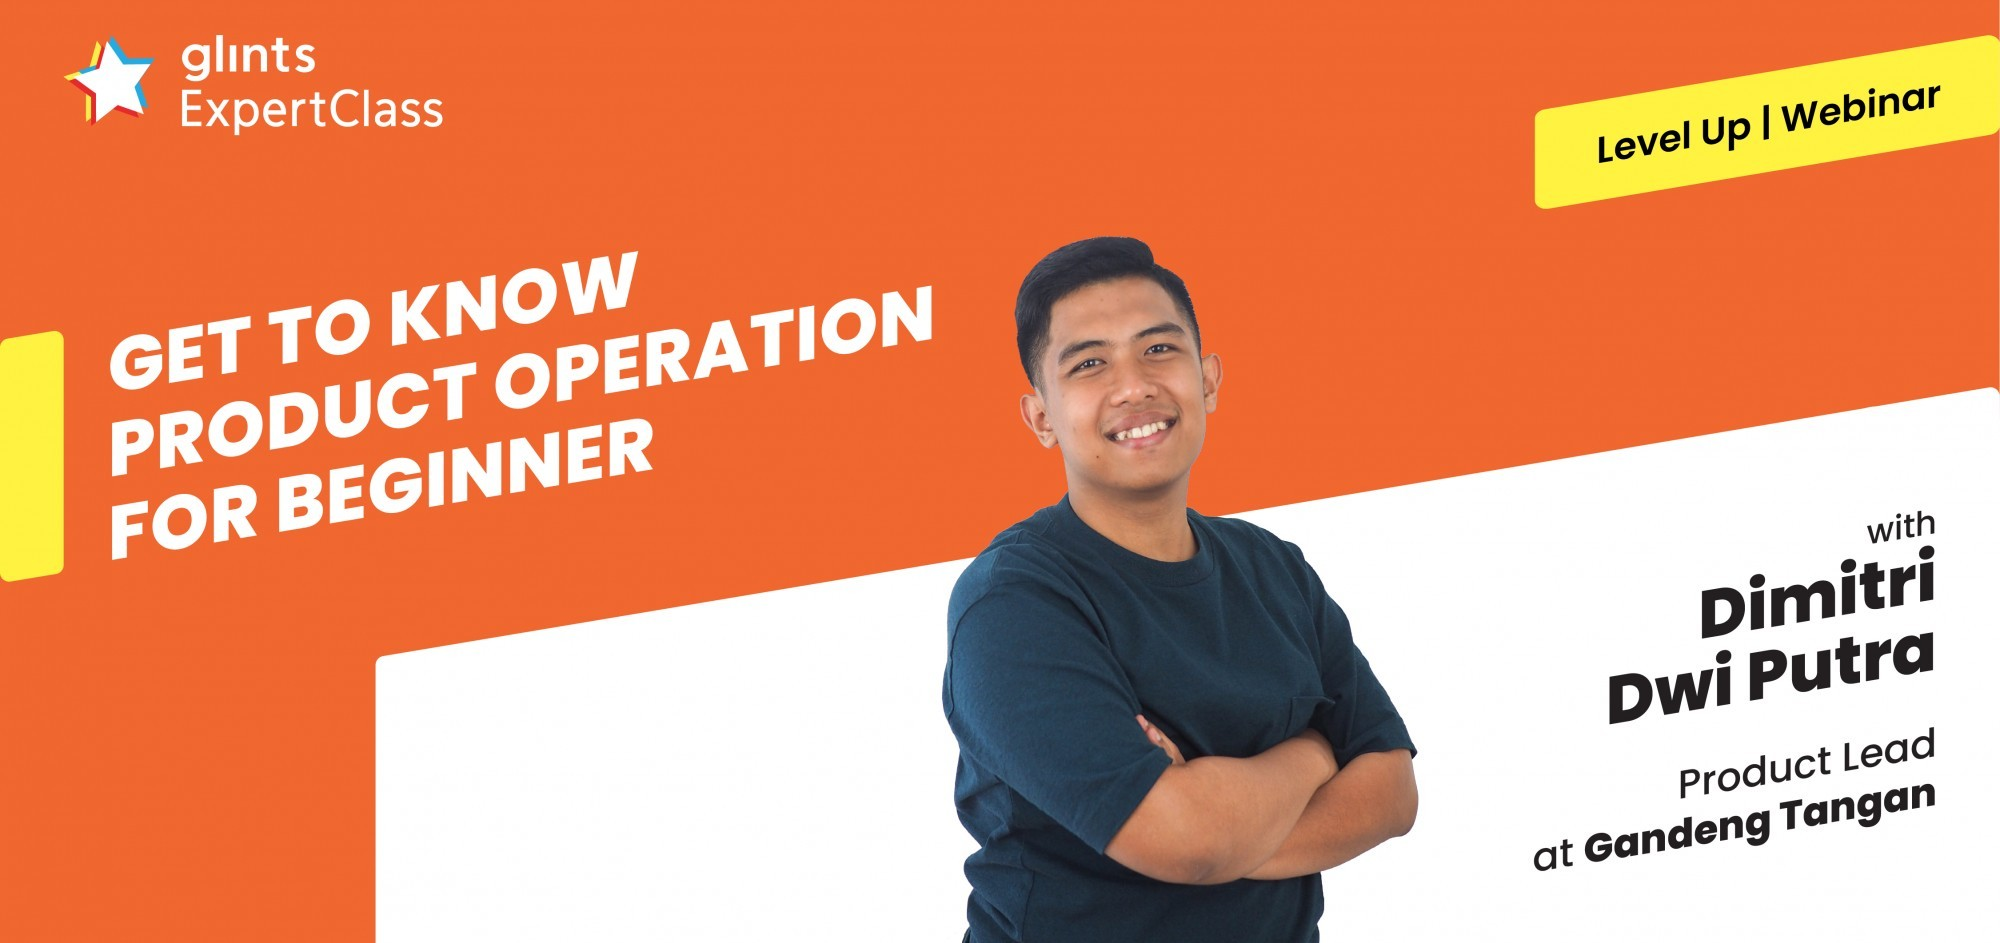 [Online Glints ExpertClass] Get To Know Product Operation For Beginner